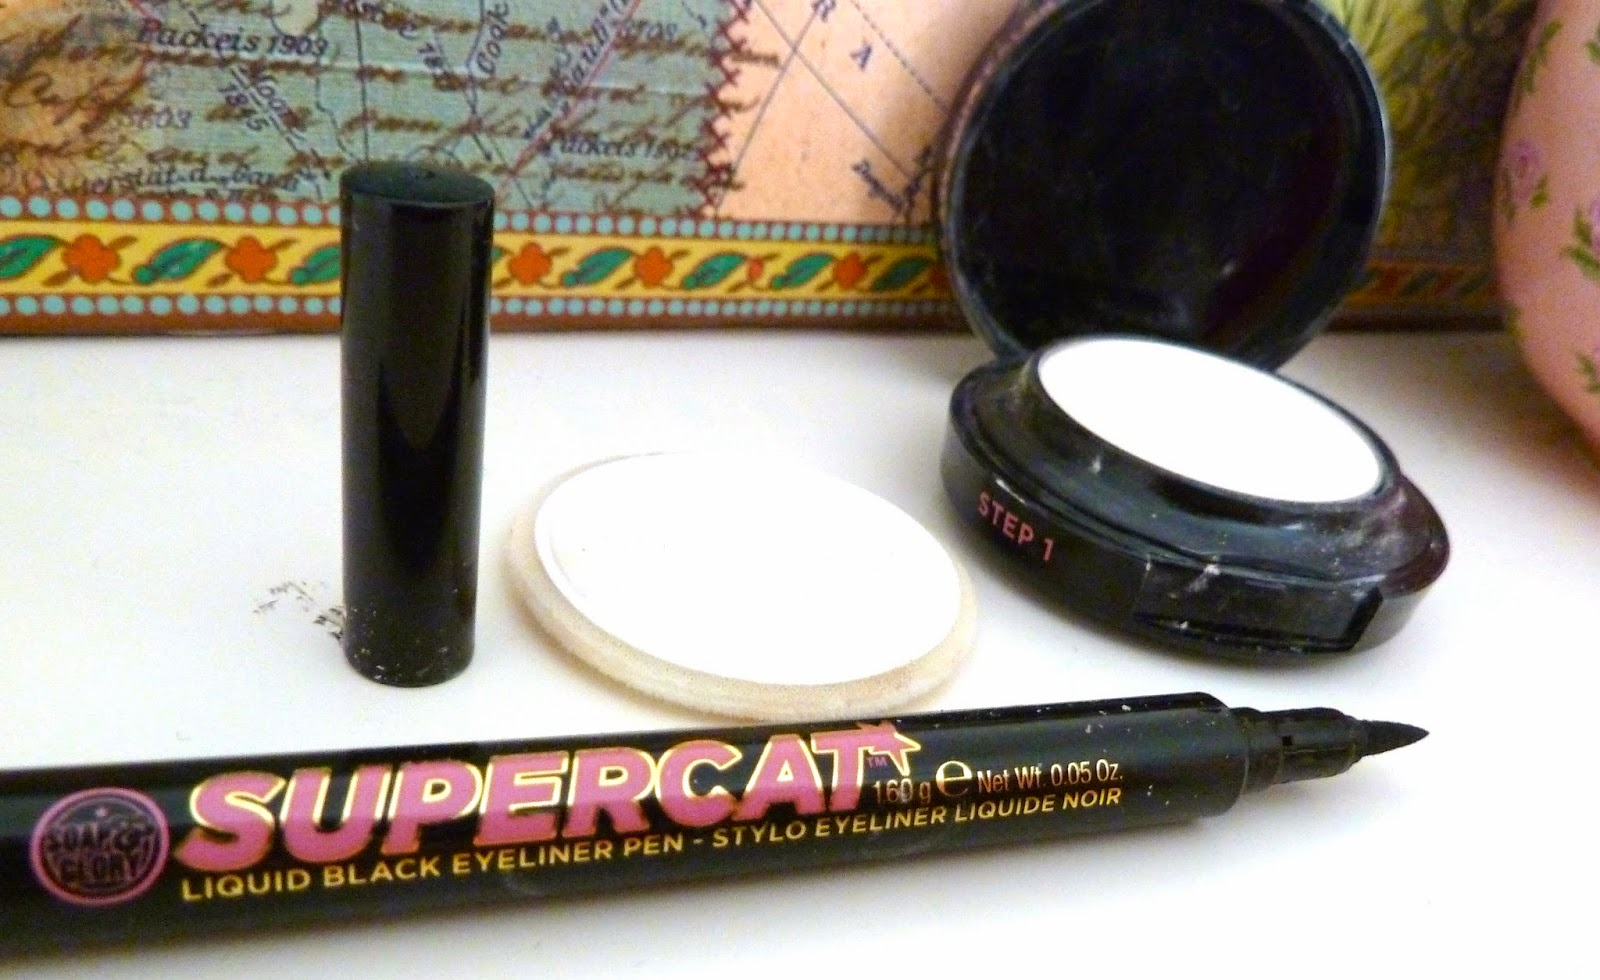 Soap & Glory Kickass Concealer and Supercat Eyeliner Product with lids off